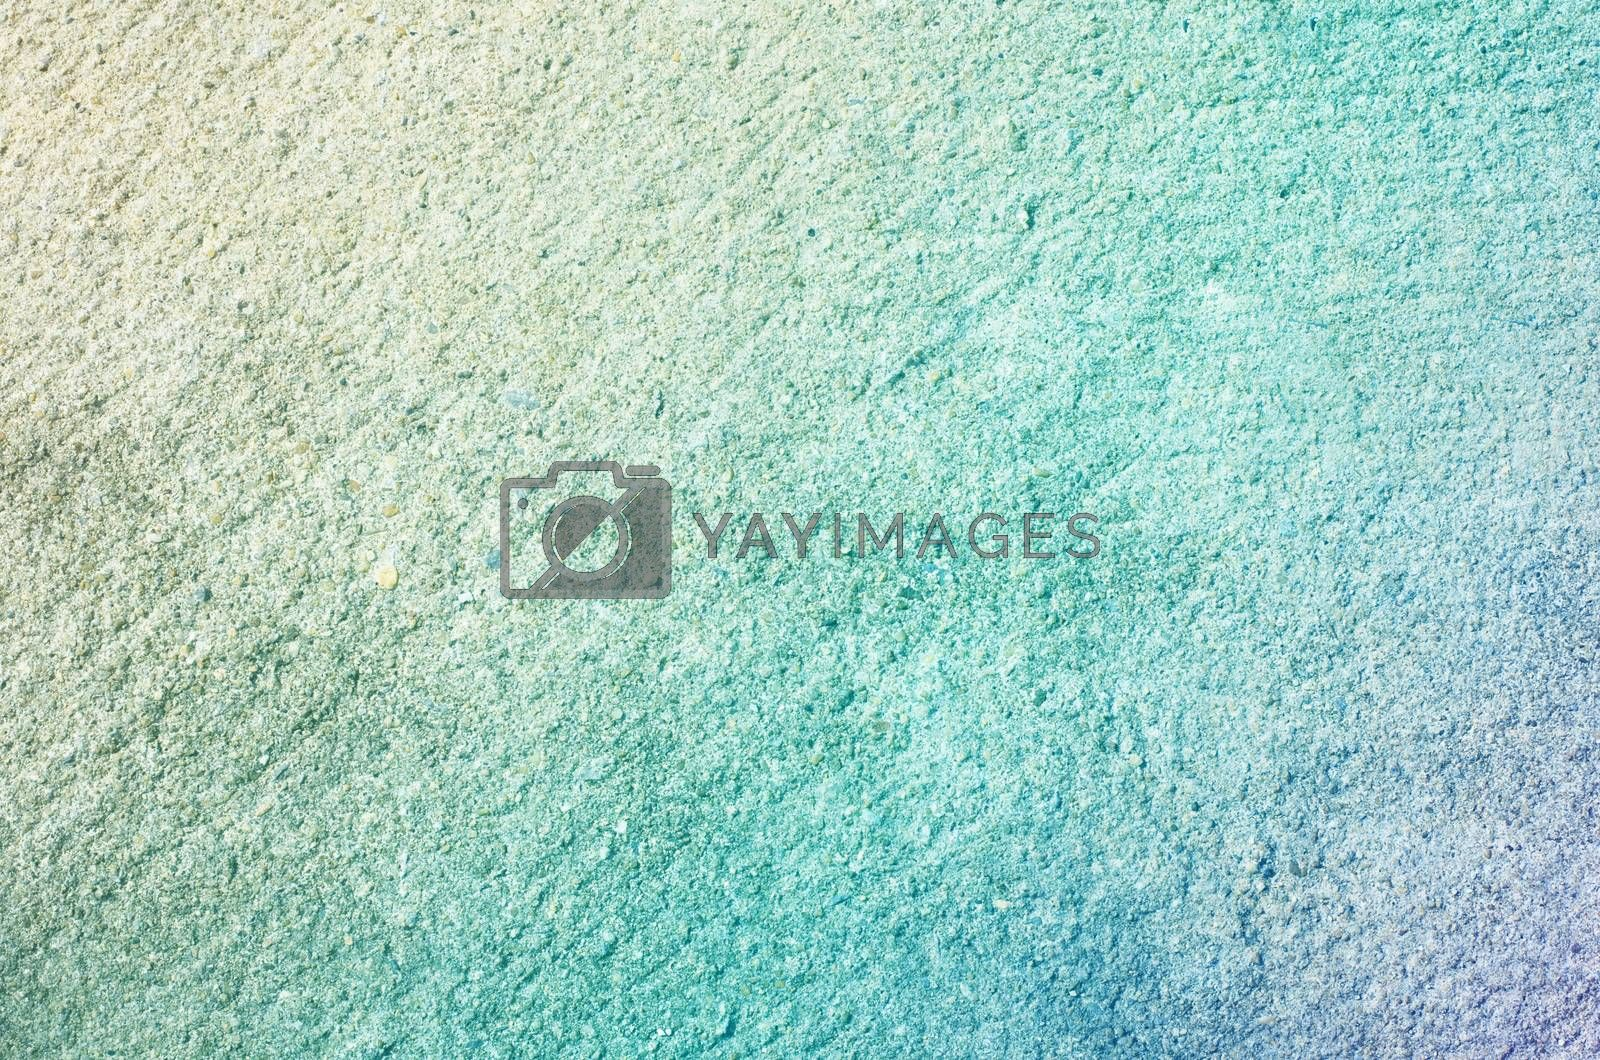 pastel color Cement concrete surface abstract background and texture